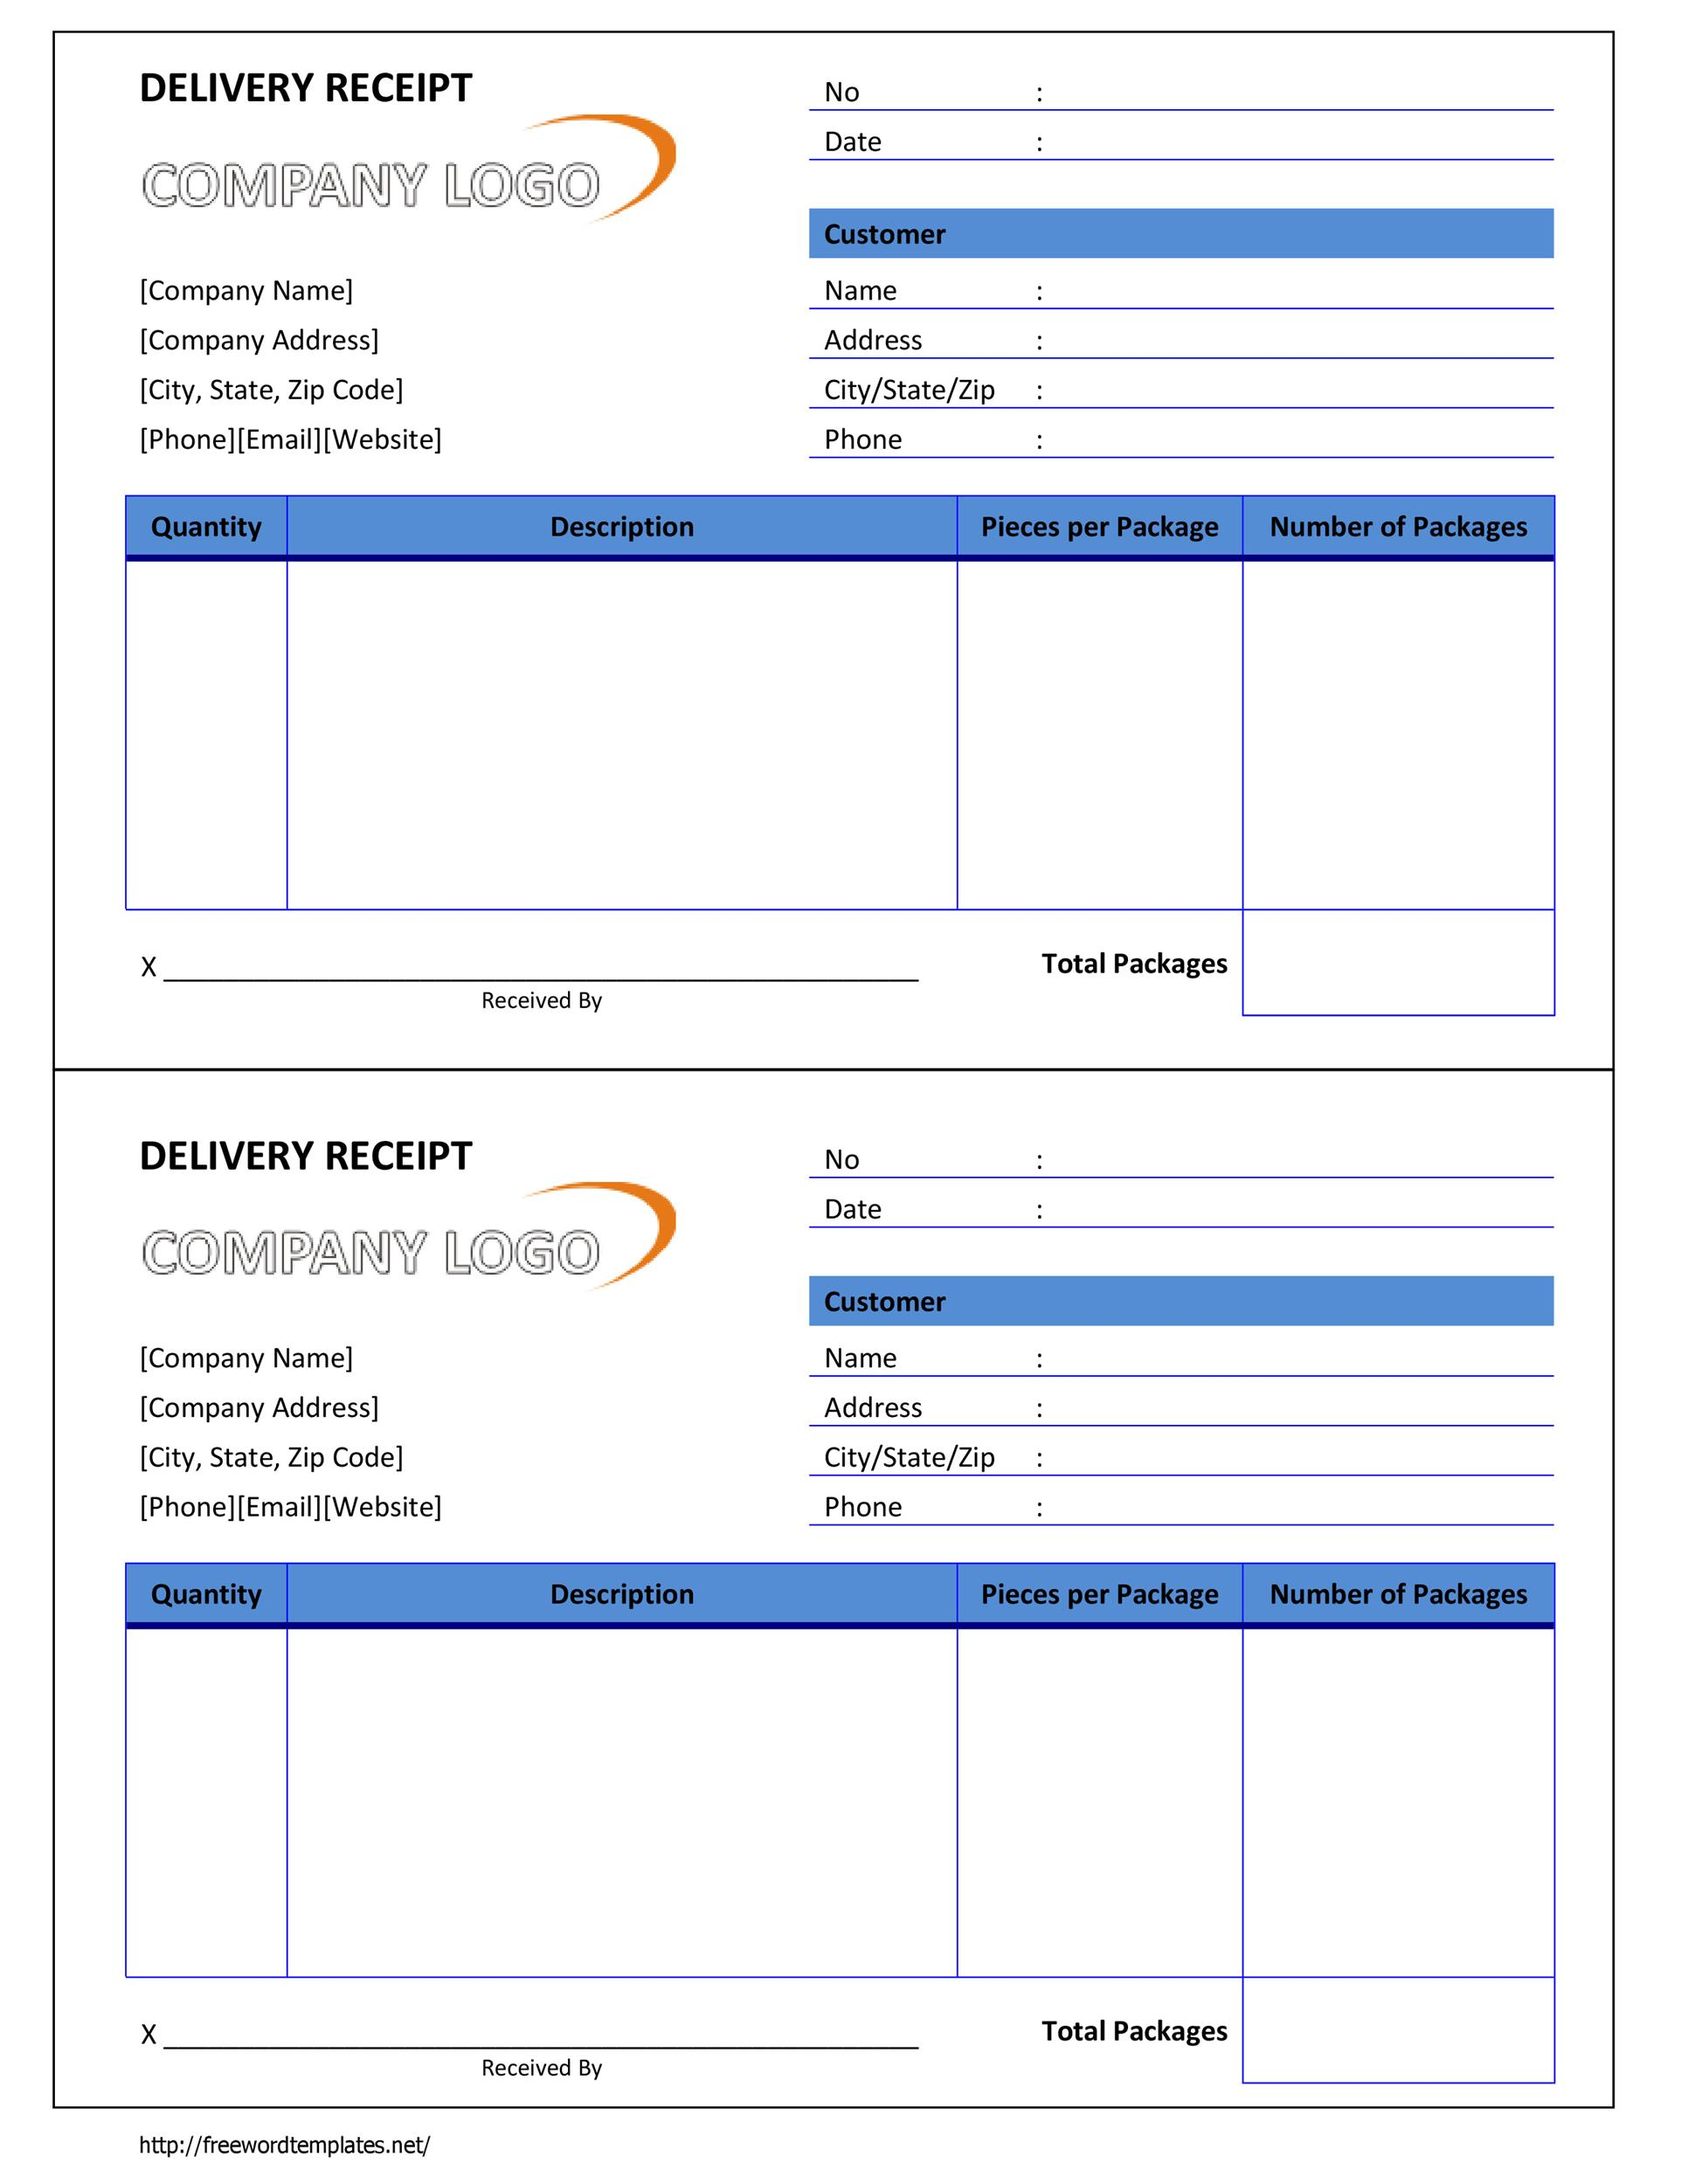 50 Free Receipt Templates Cash Sales Donation Taxi – Company Receipt